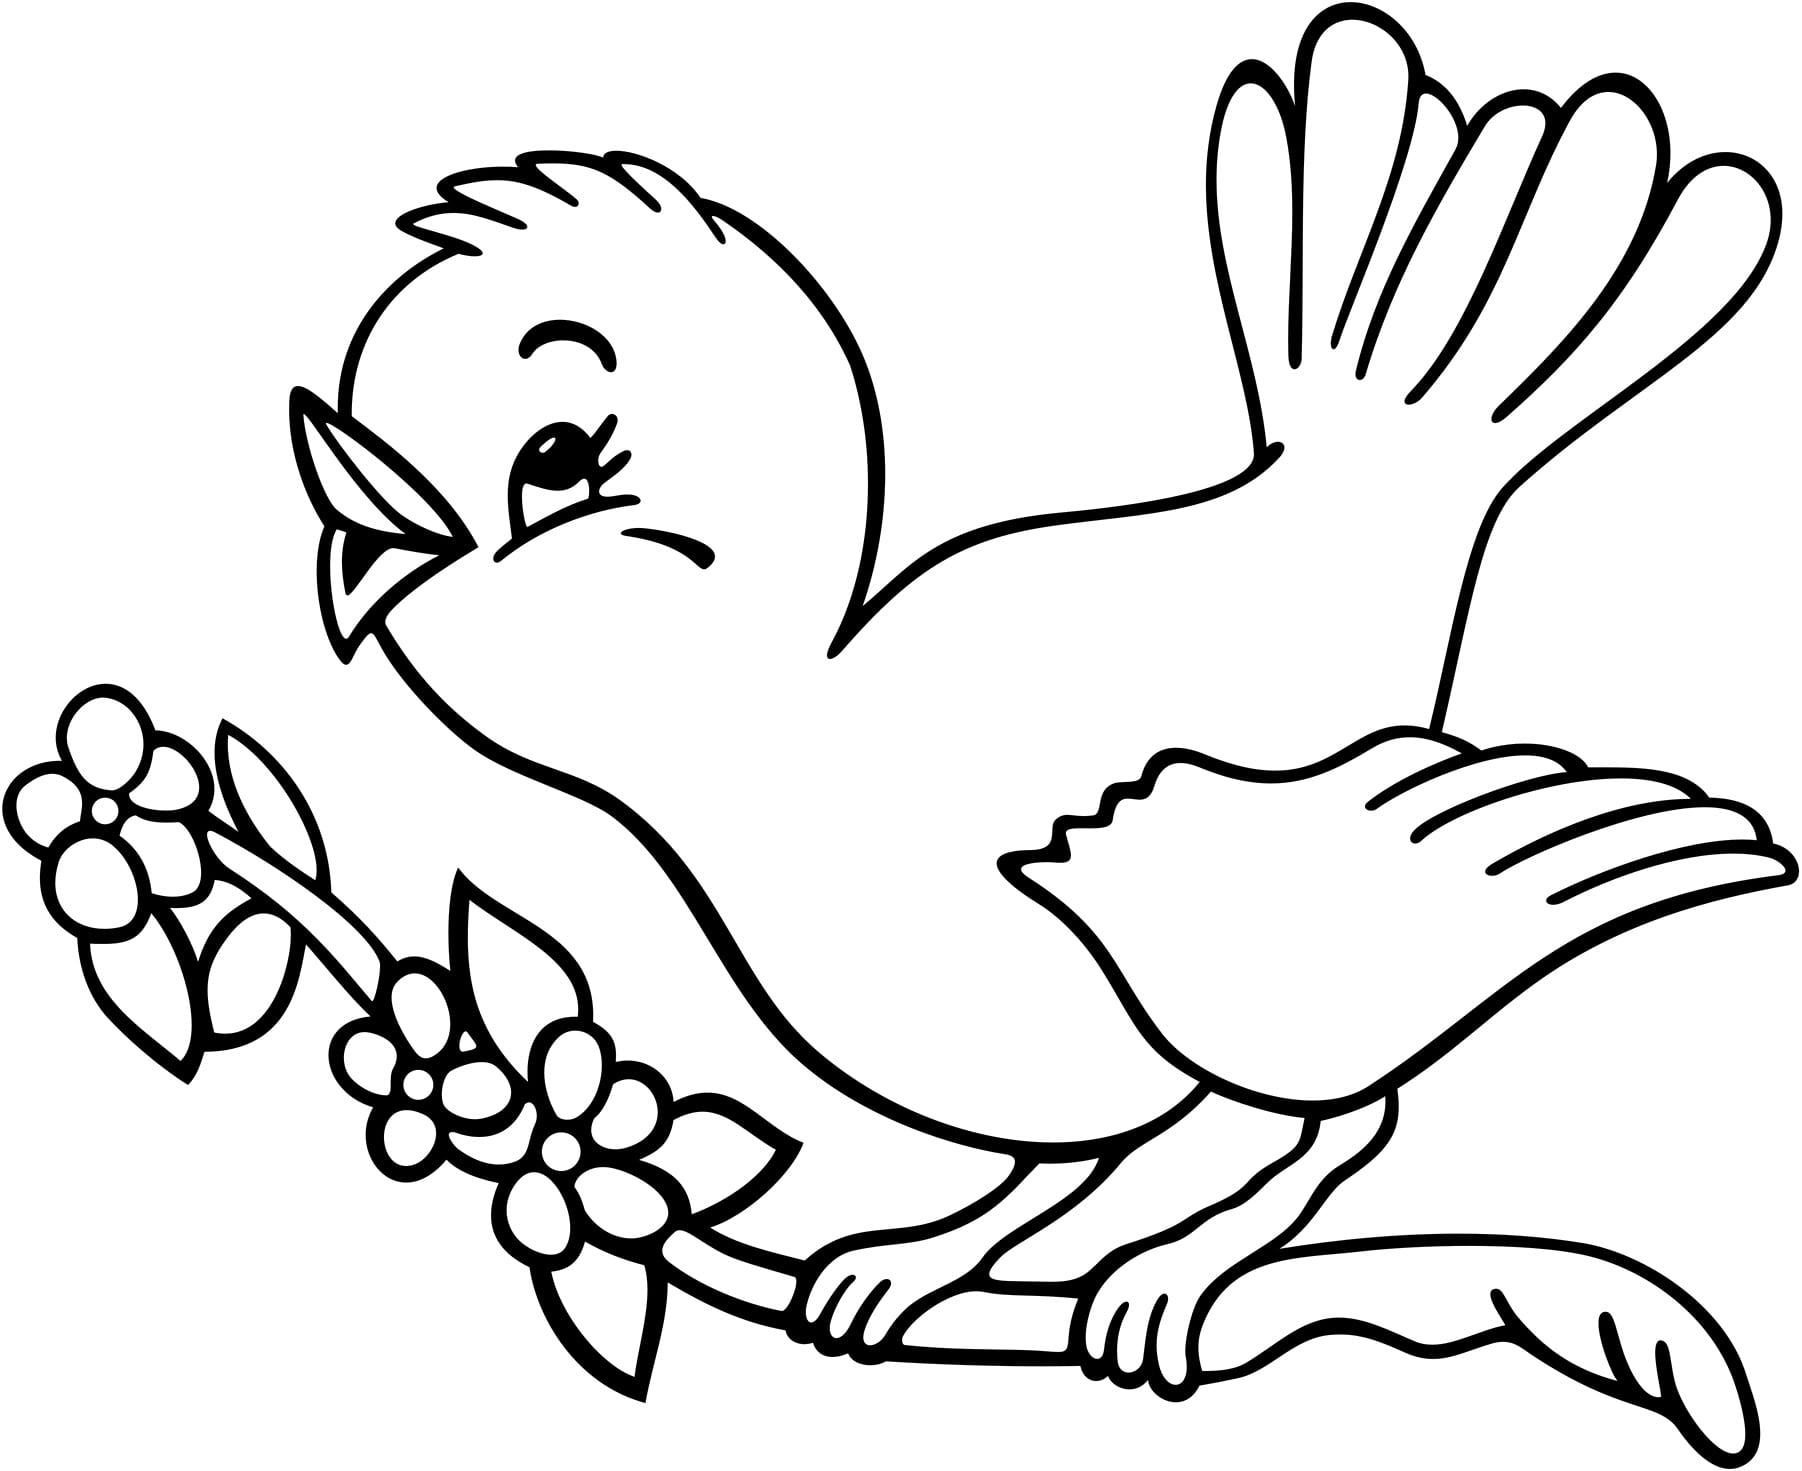 Bird Coloring Pages Coloring Pages To Print Bird Color Page